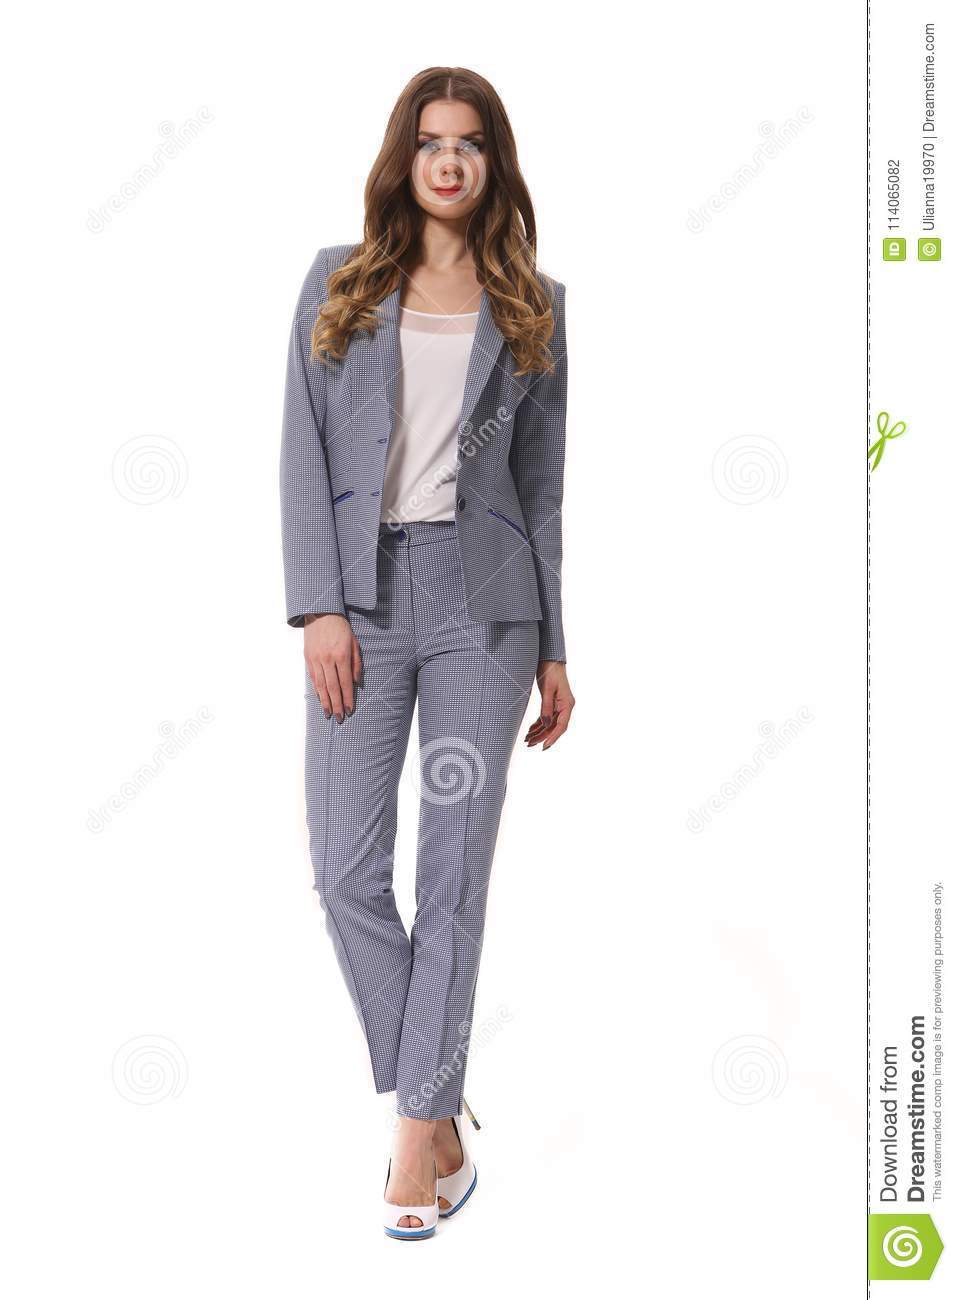 Young Caucasian Business Woman Executive Posing In Designer Formal Summer Blue Pant Suit Stock Photo Image Of Hair Healthy 114065082